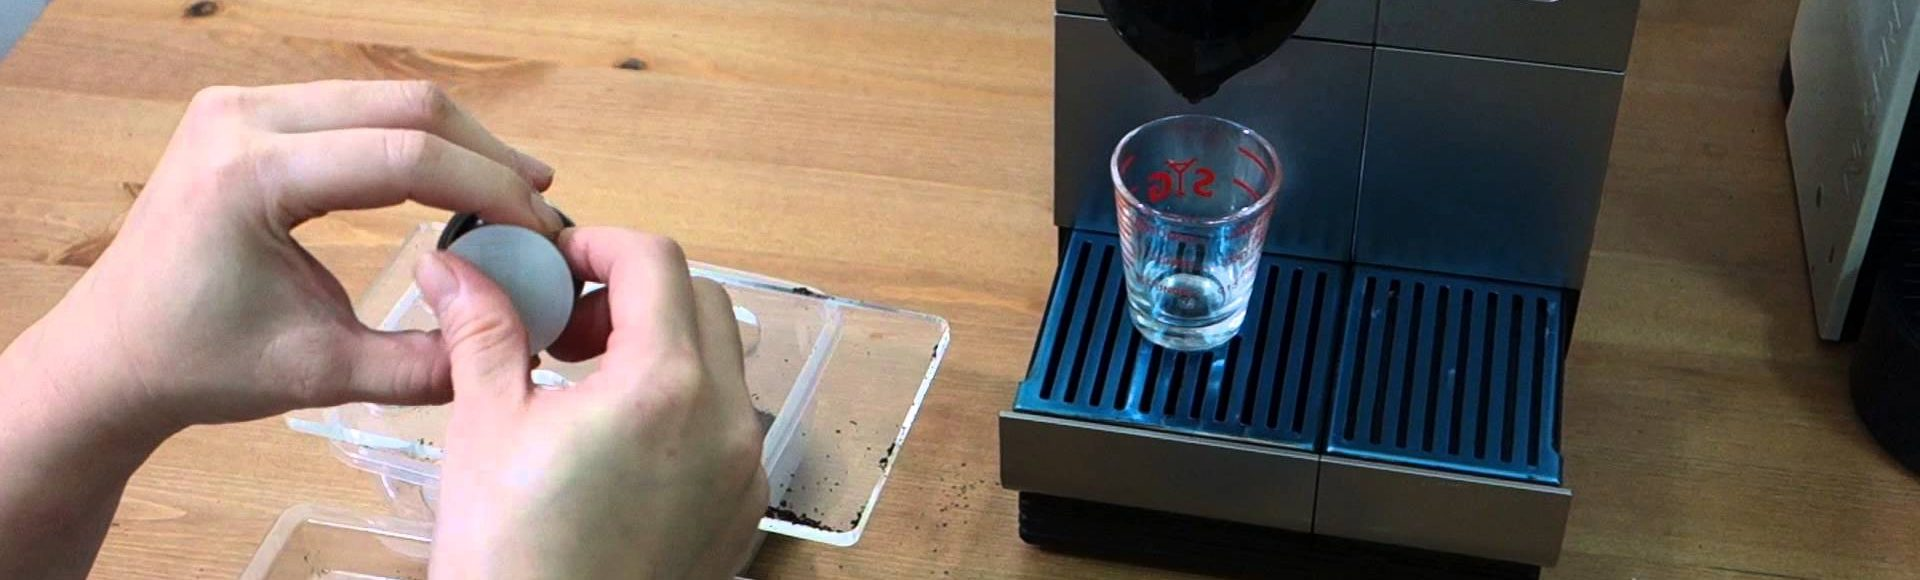 Coffee gadget demos